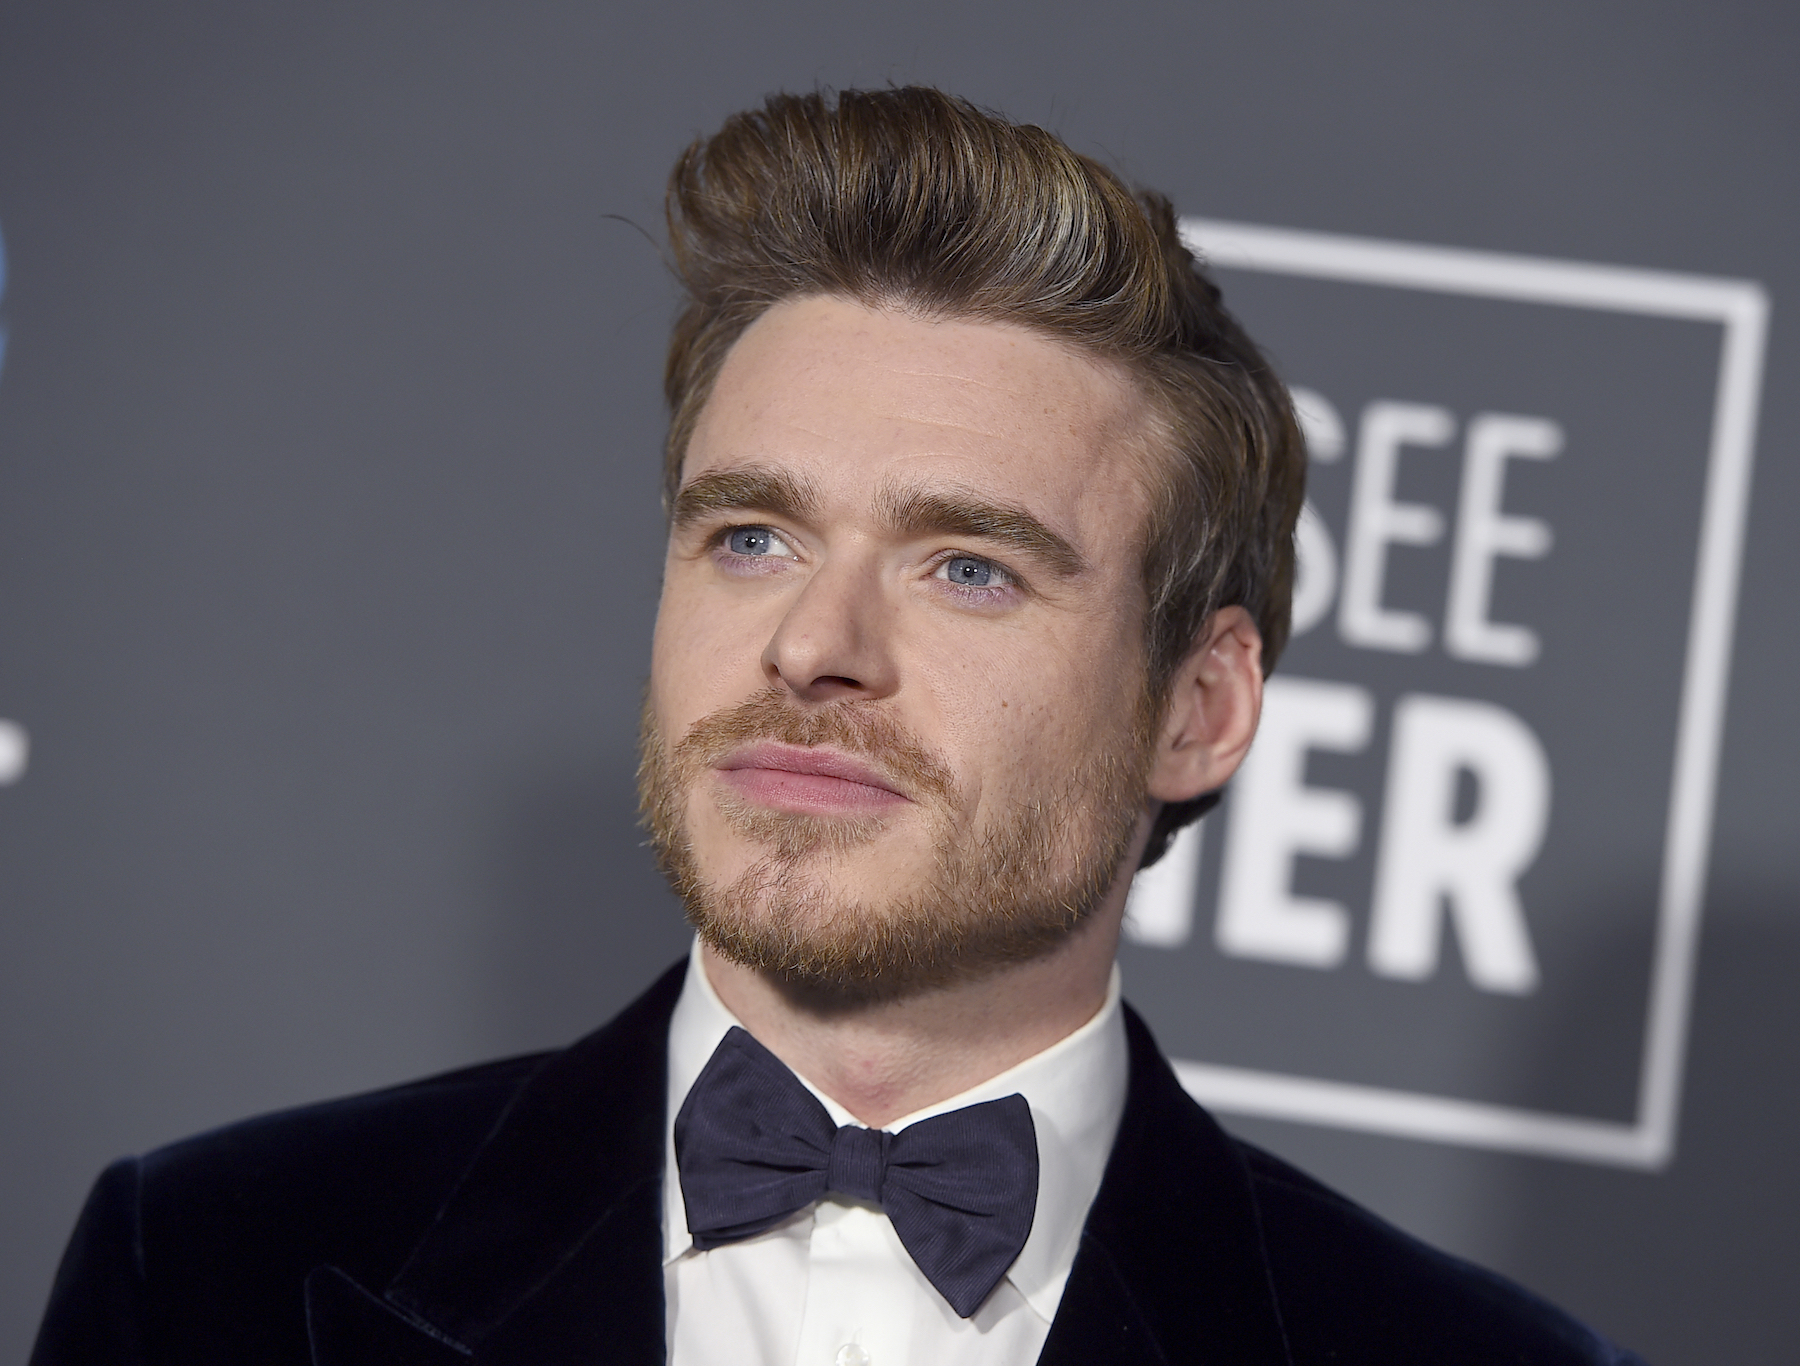 <div class='meta'><div class='origin-logo' data-origin='AP'></div><span class='caption-text' data-credit='Jordan Strauss/Invision/AP'>Richard Madden arrives at the 24th annual Critics' Choice Awards on Sunday, Jan. 13, 2019, at the Barker Hangar in Santa Monica, Calif.</span></div>